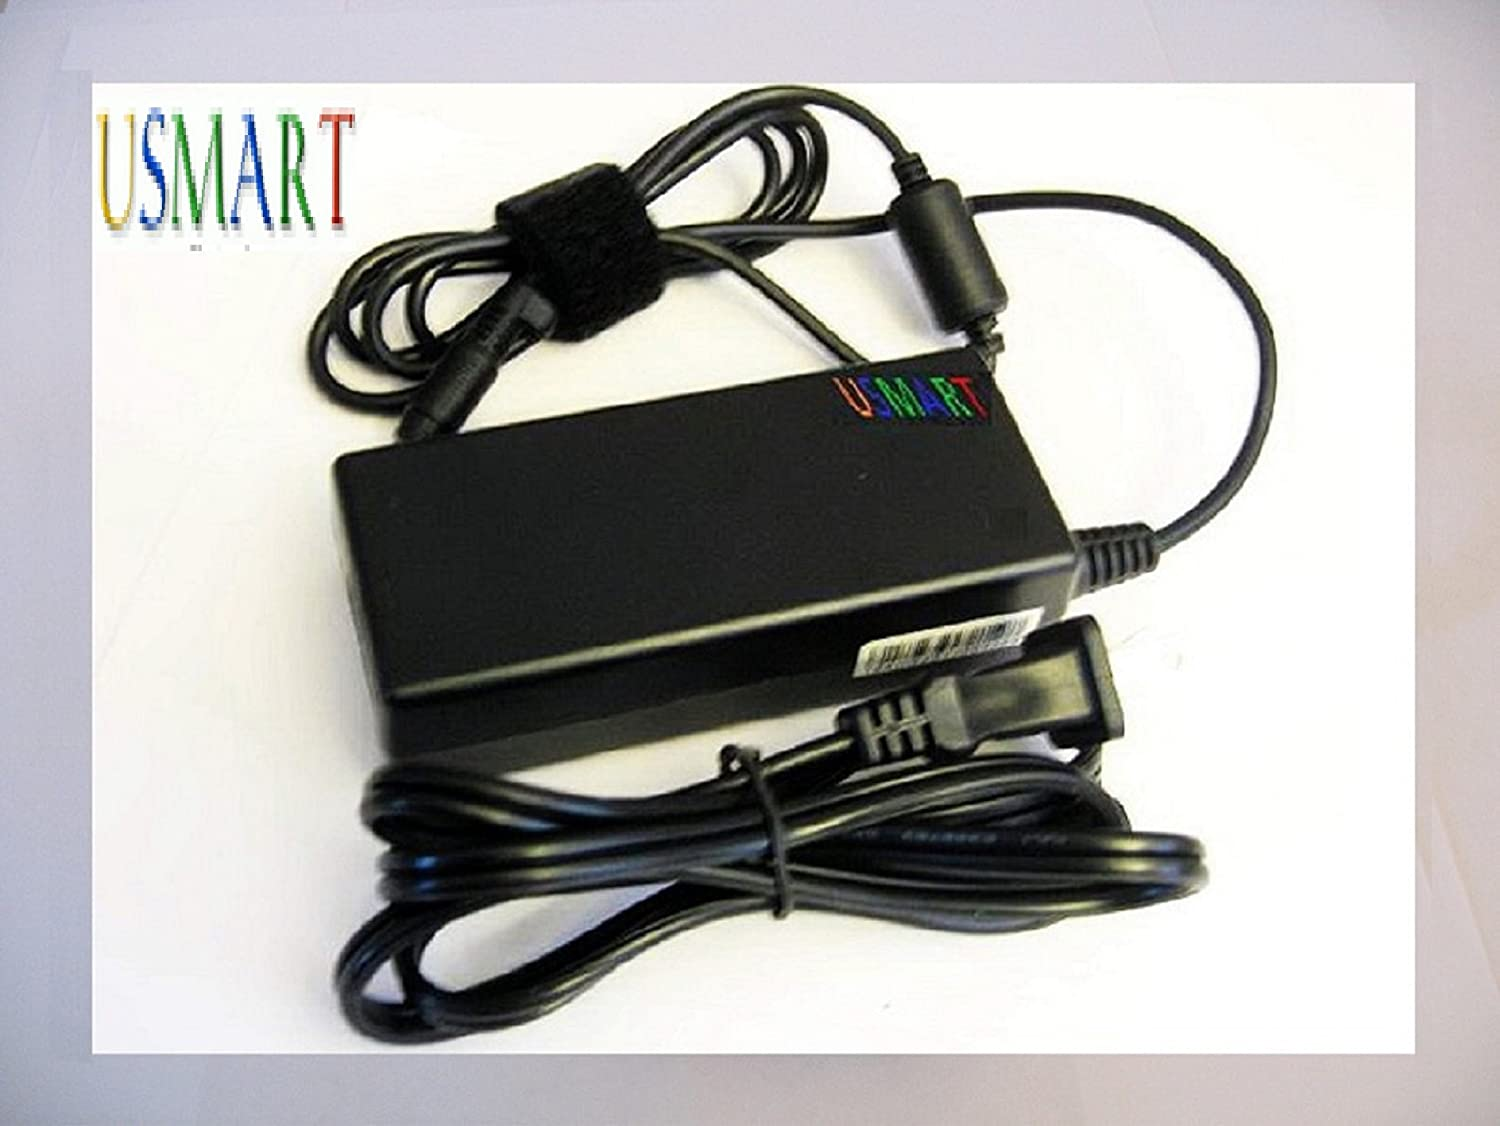 Ac Adapter Charger for Acer Aspire As1410-2285 1410-2099 1410-8414 1410-2039 1410-2497 1410-2706 1410-2762 1410-2801 1410-2817 1410-2920 1410-2936 1410-2954 1410-2990 1410-8803 1410-8804 1410-8837 1410-8913 Laptop Netbook Battery Power Supply Cord Plug (1 Free Usmart Euro Plug Travel Attachment with Your Order)